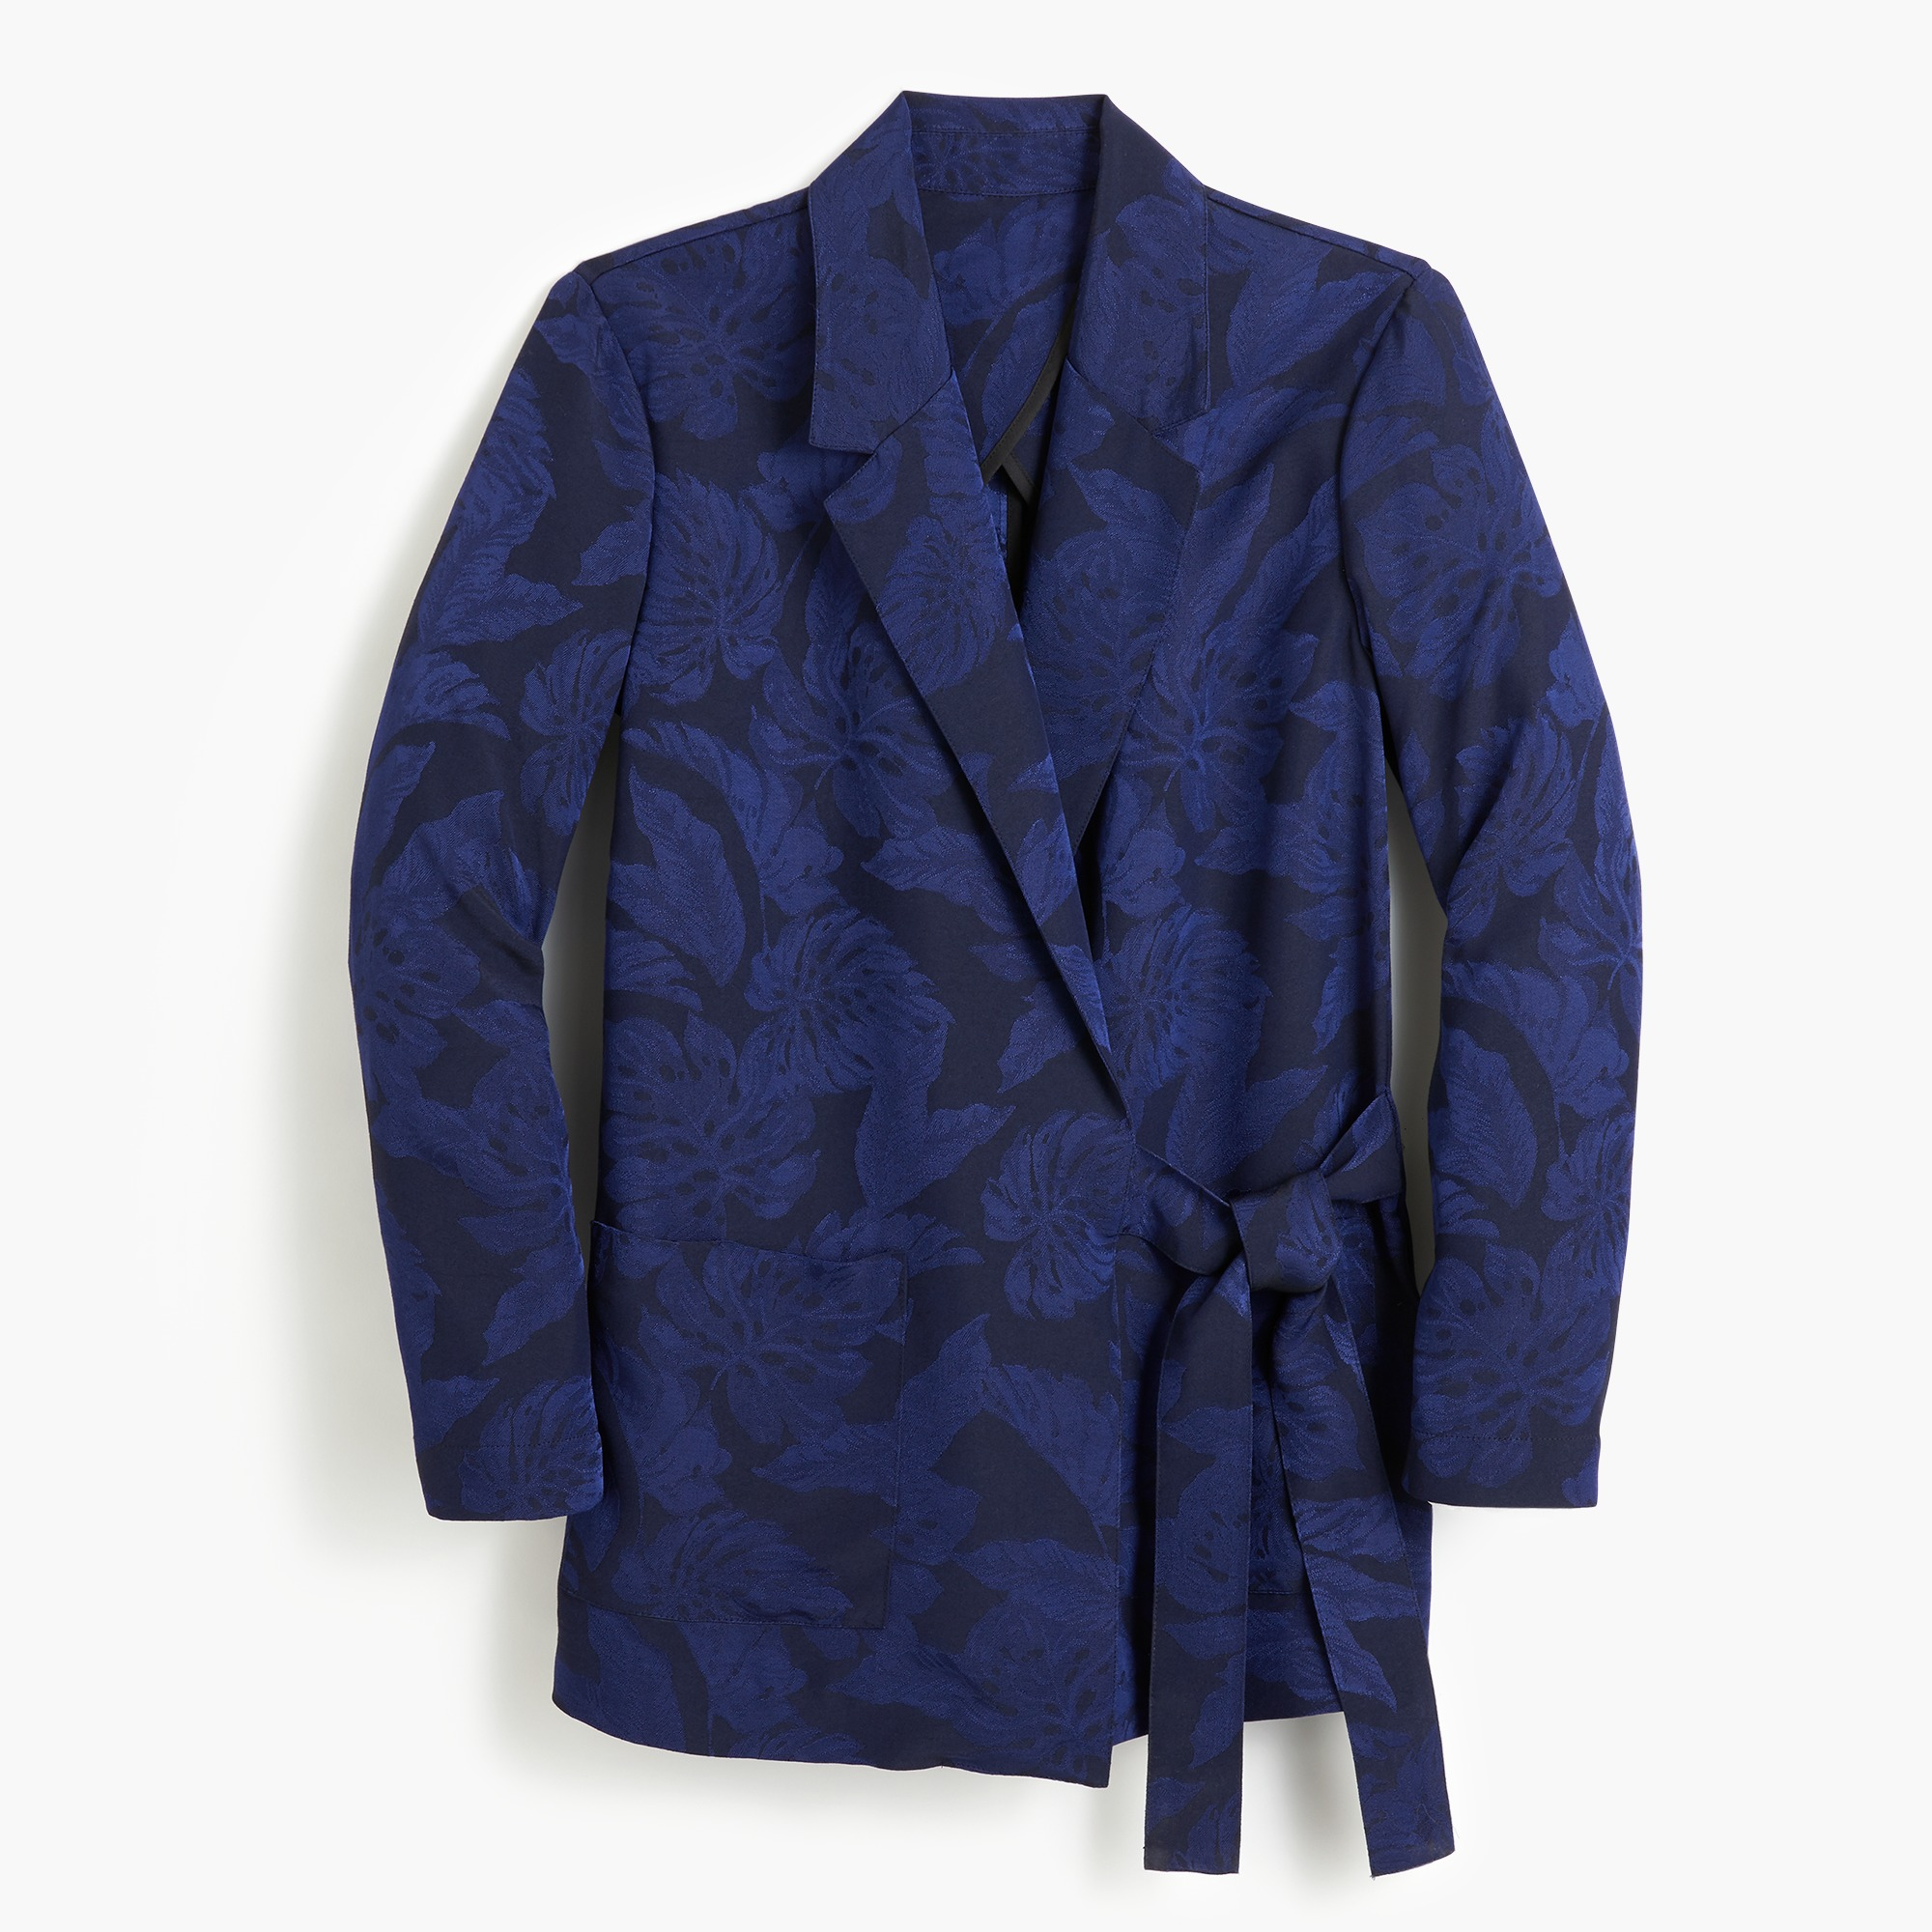 Image 1 for Collection tie-close jacquard blazer